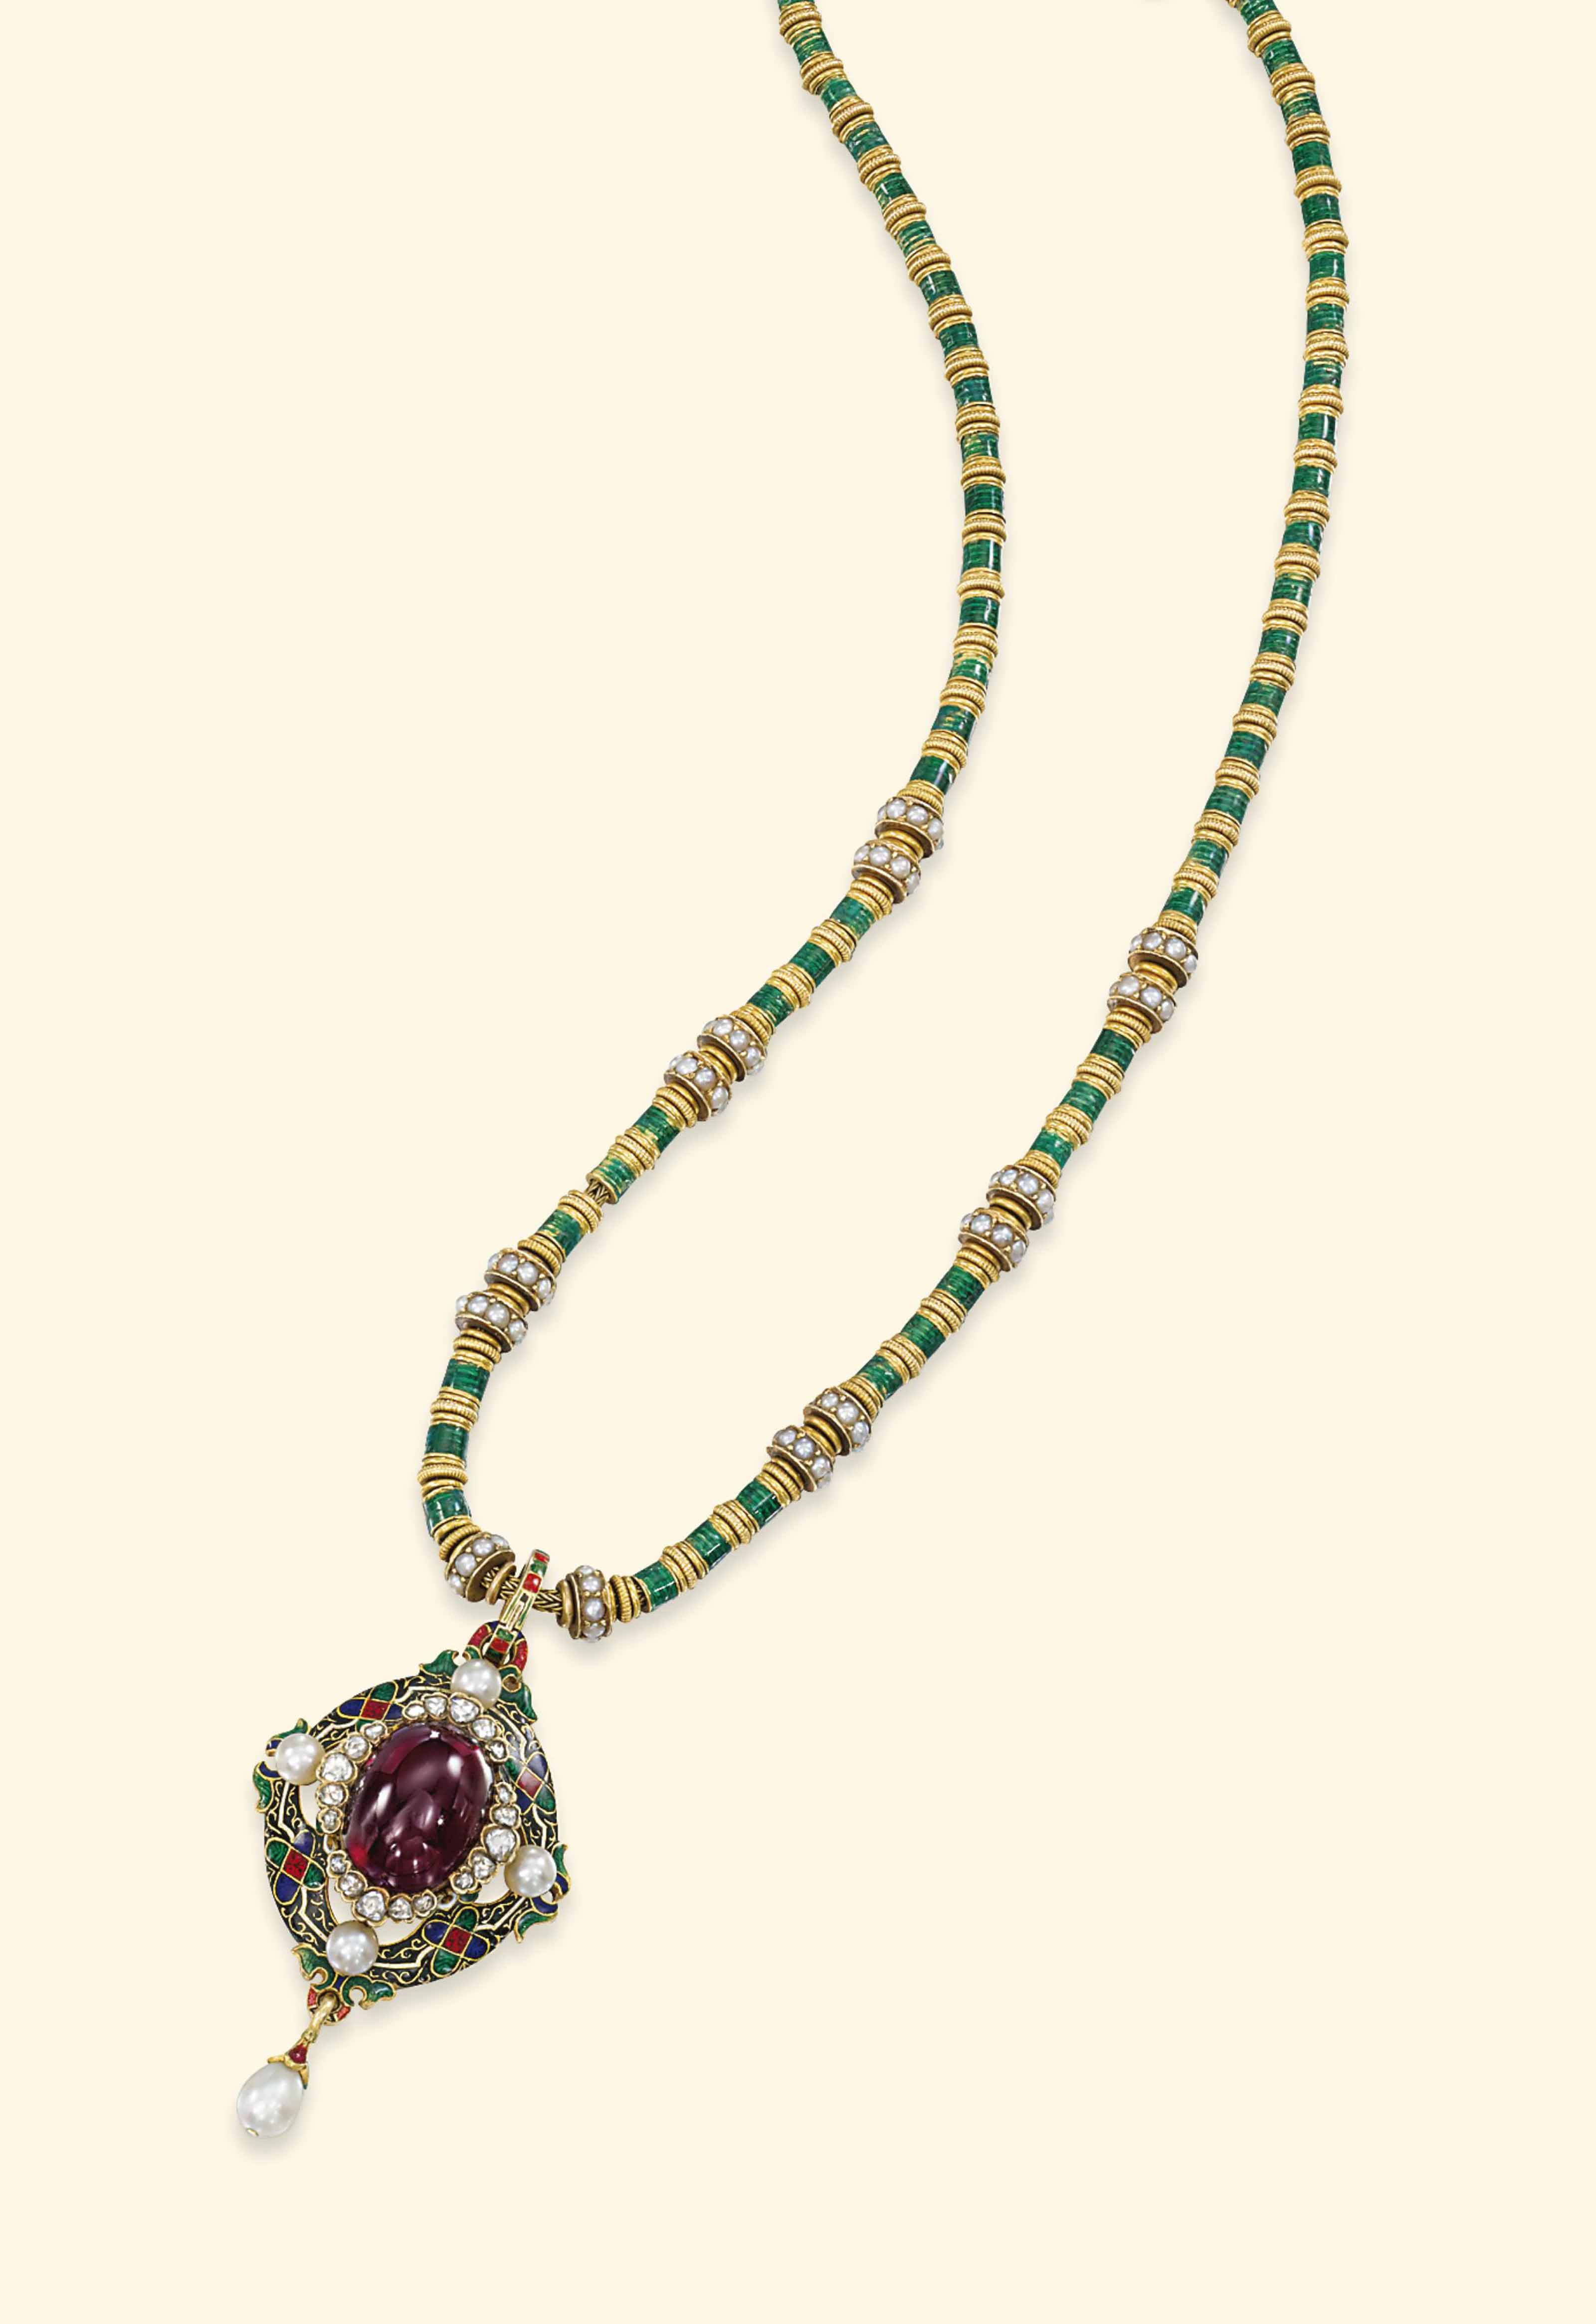 A GOLD AND ENAMEL NECKLACE, BY